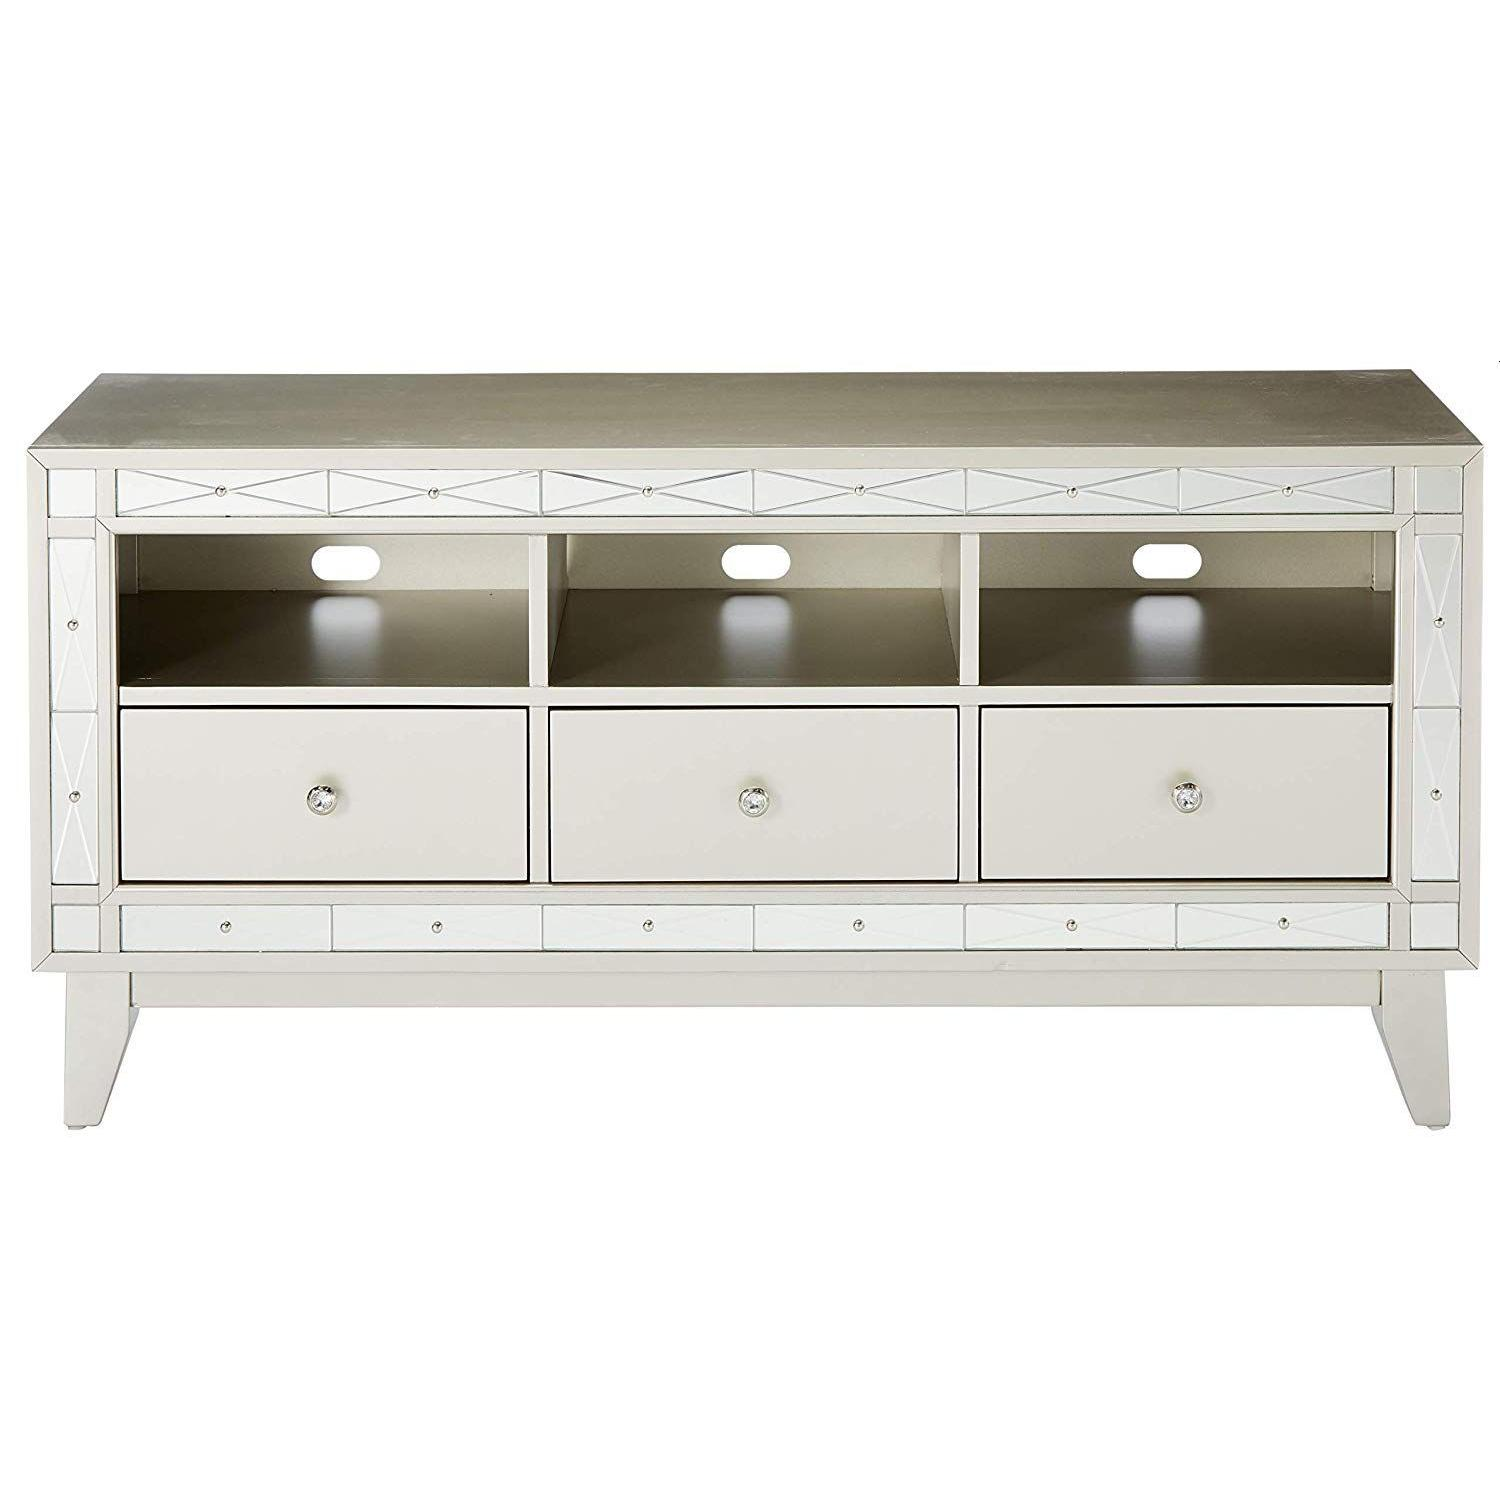 Glam Style TV Console w/ Mirror Accent - image-1